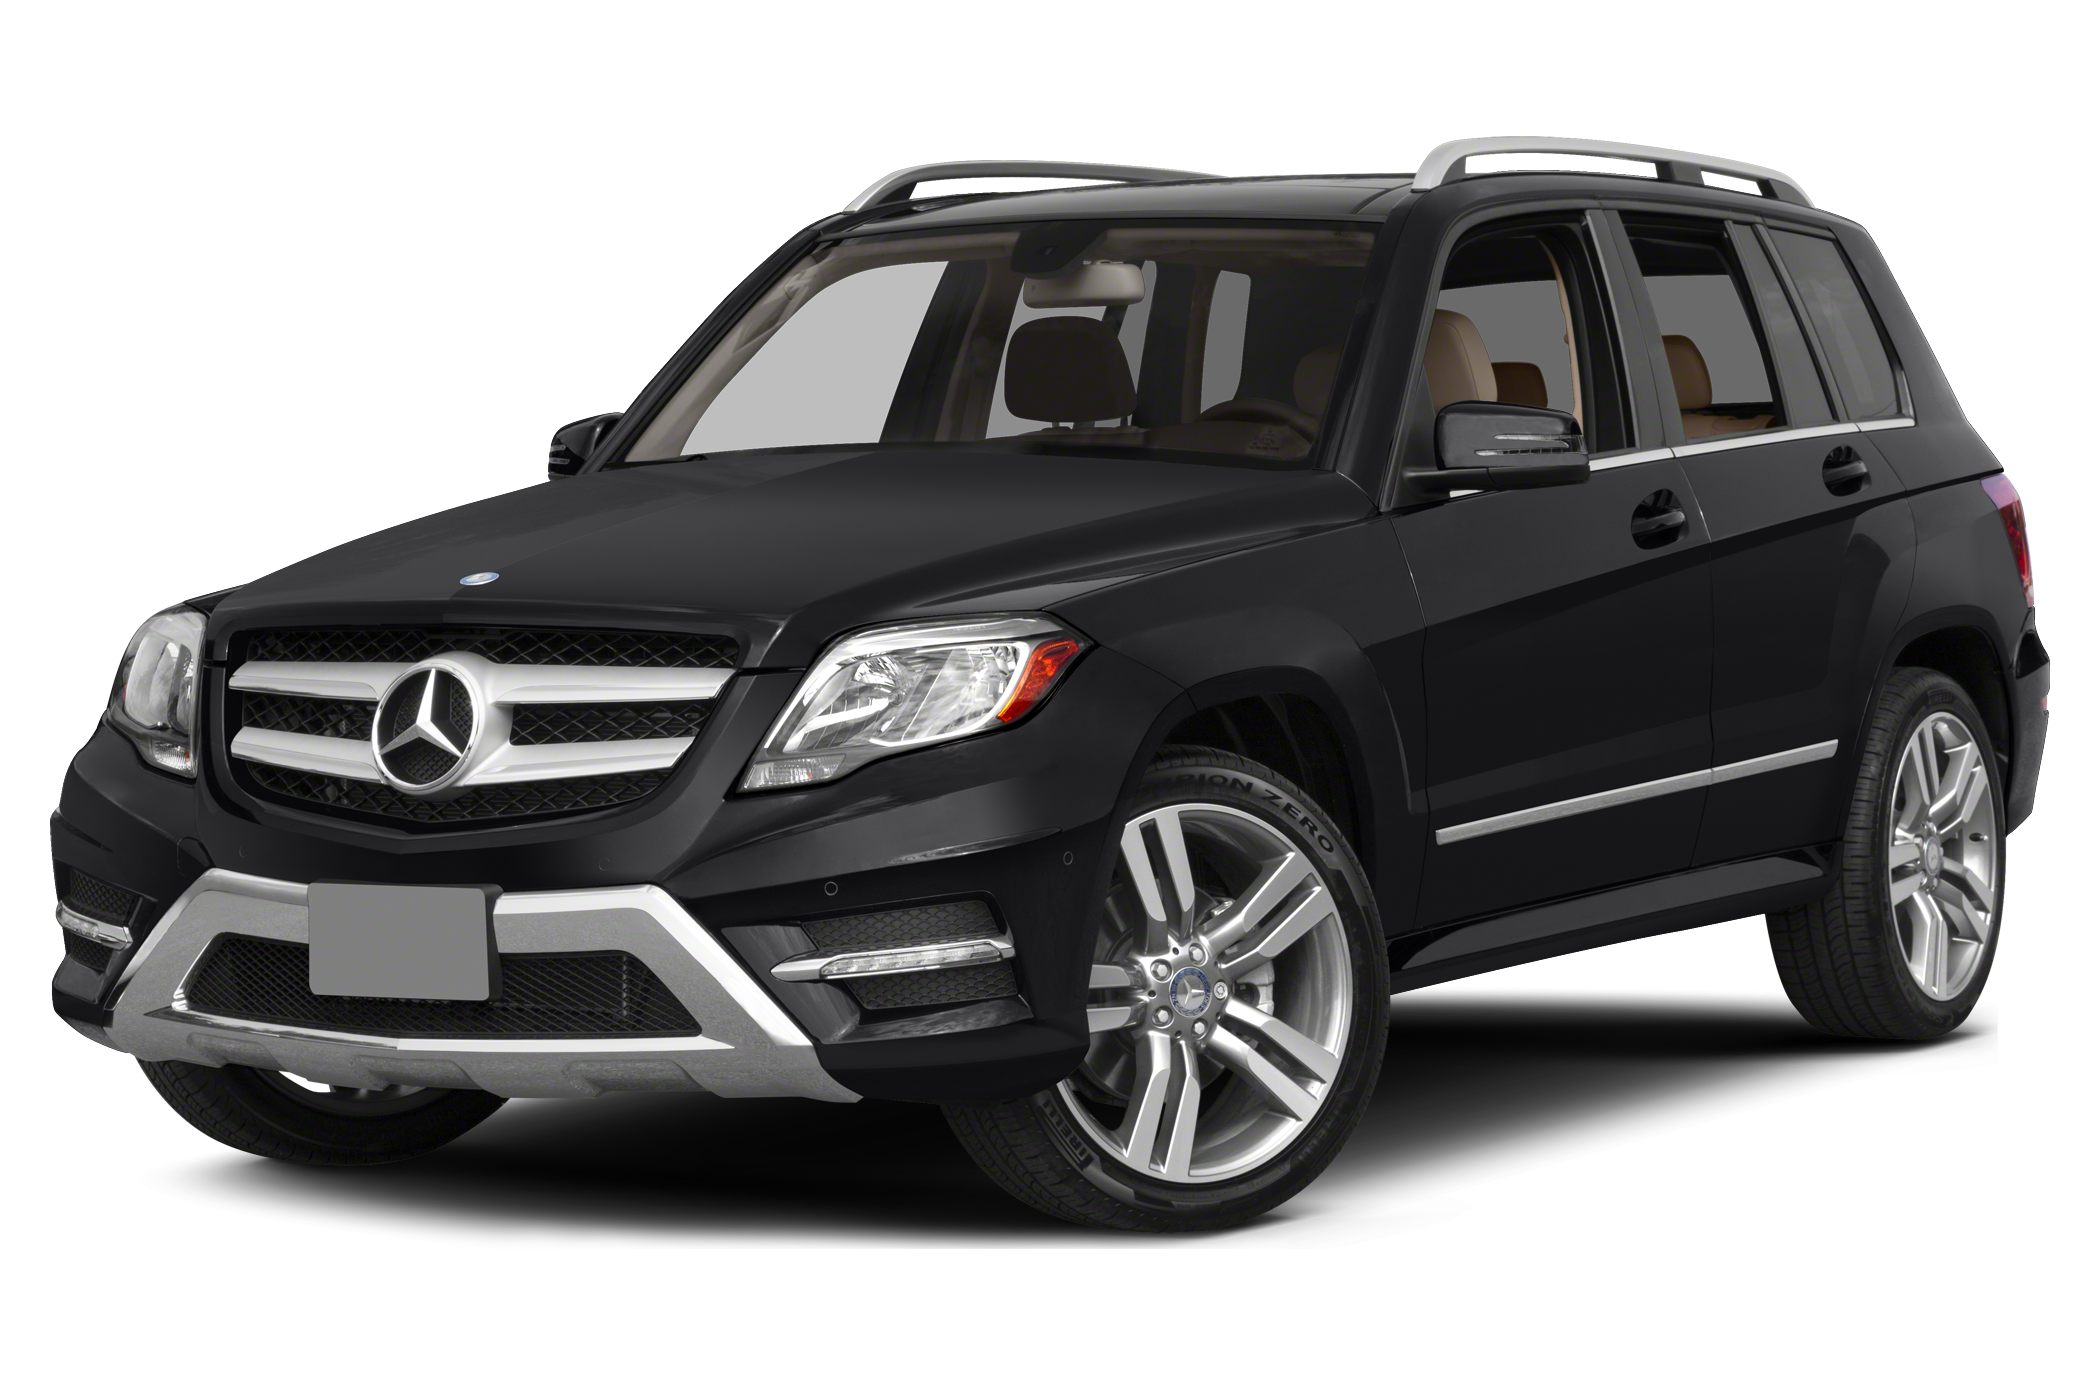 2015 Mercedes-Benz GLK-Class GLK350 SUV for sale in Los Angeles for $43,365 with 8 miles